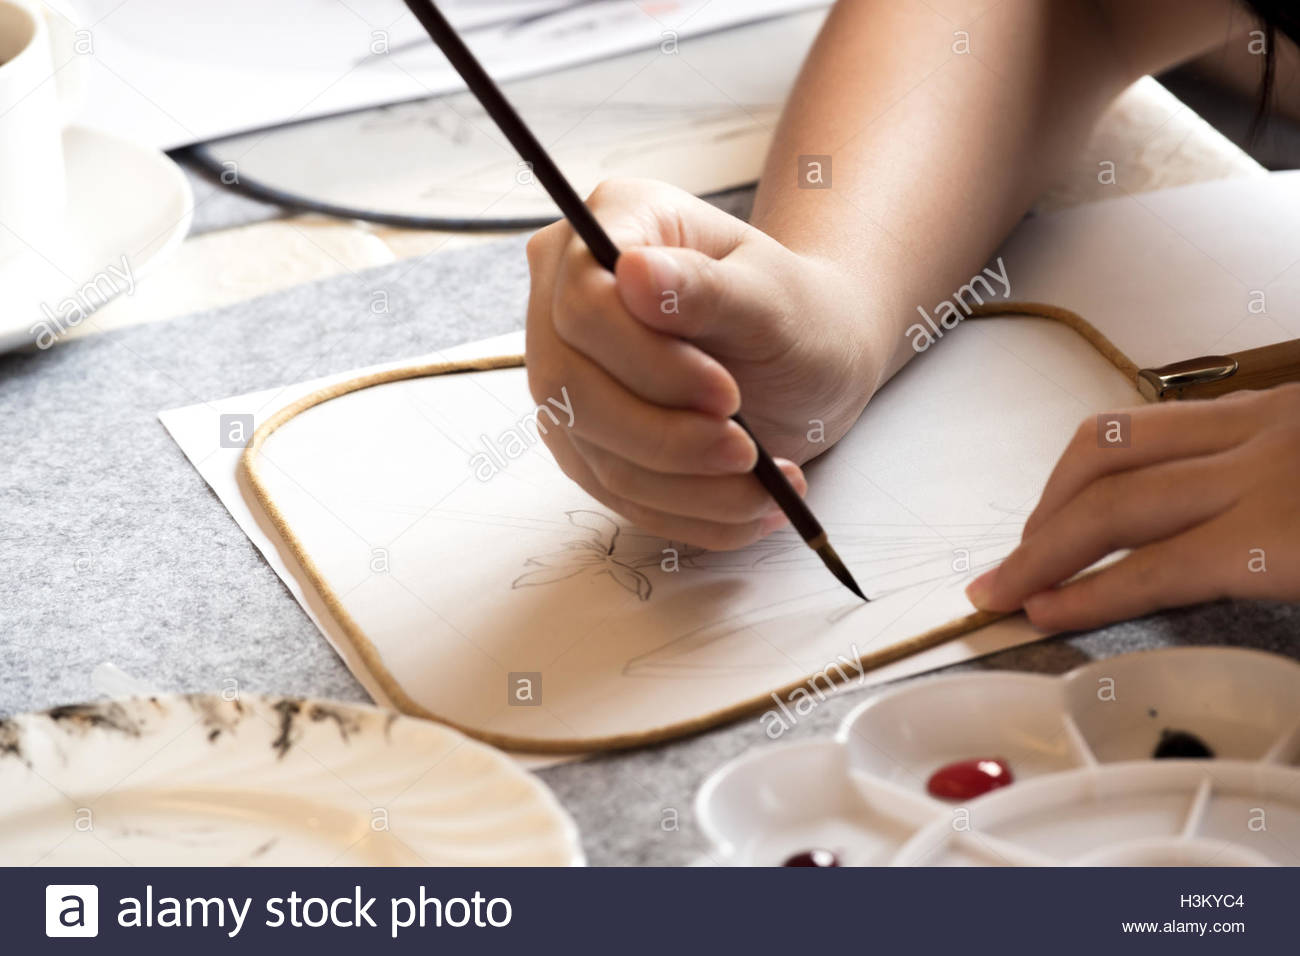 1300x956 Someone Drawing On Paper Fan Stock Photo 122755140